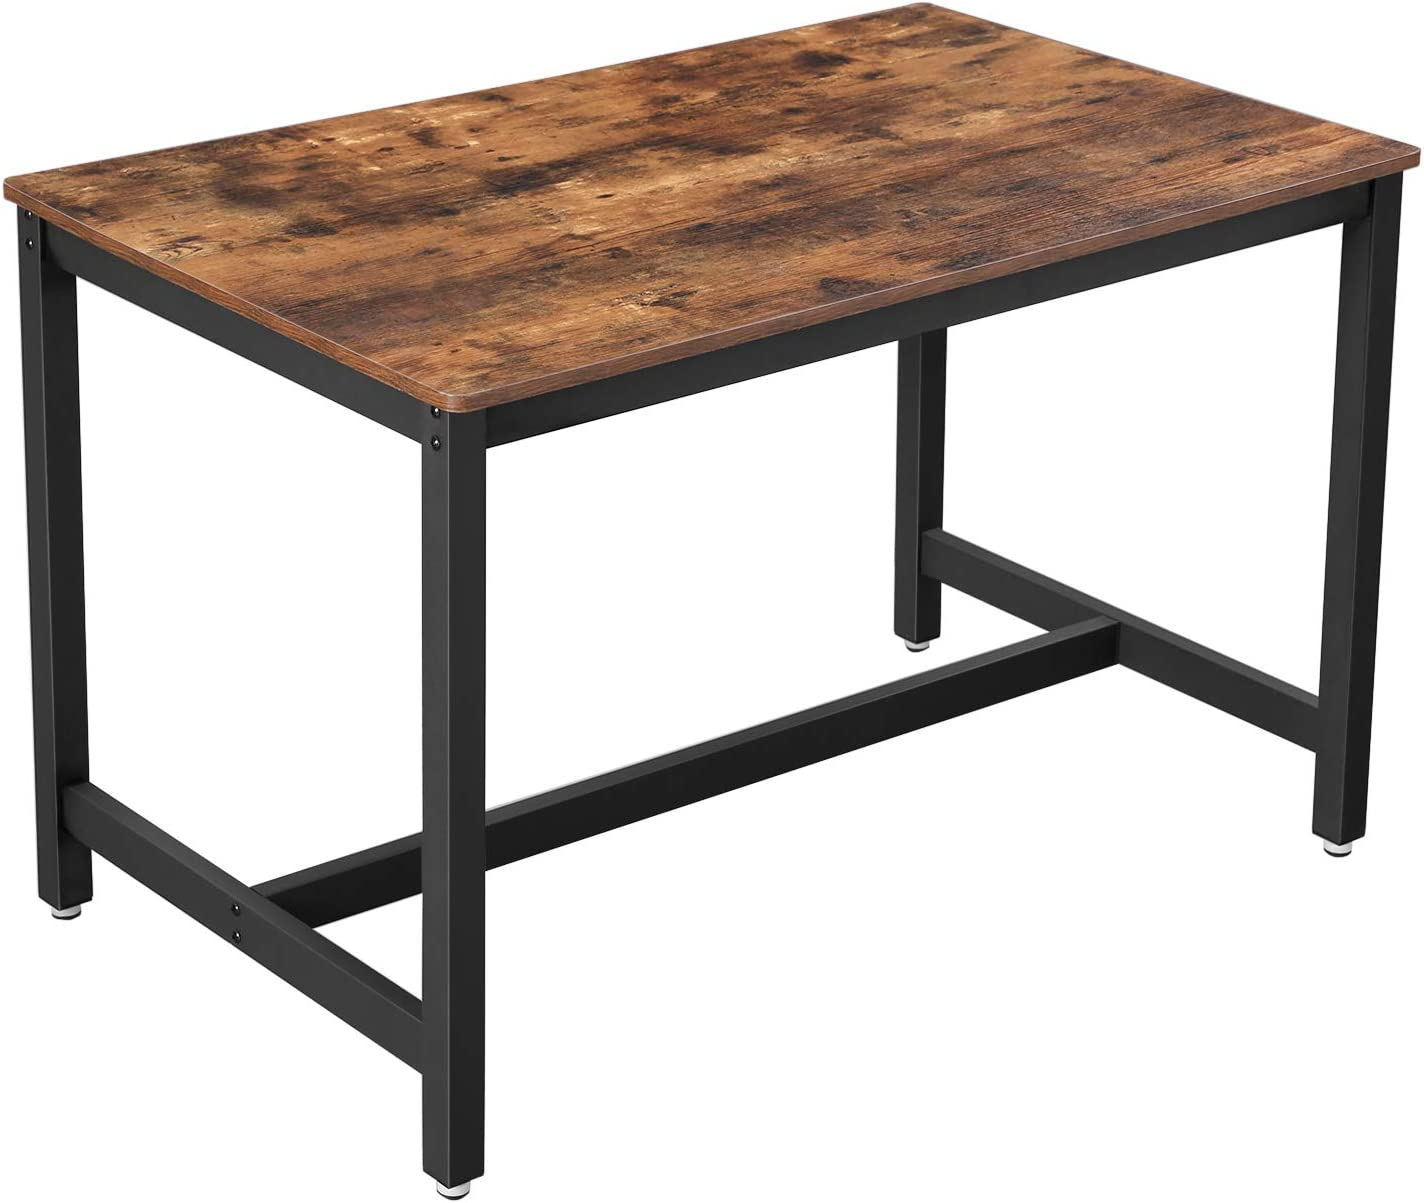 Vasagle Dining Table For 4 People Kitchen Table 120 X 75 X 75 Cm Heavy Duty Metal Frame Industrial Style For Living Room Dining Room Rustic Brown And Black Kdt75x Amazon Co Uk Kitchen